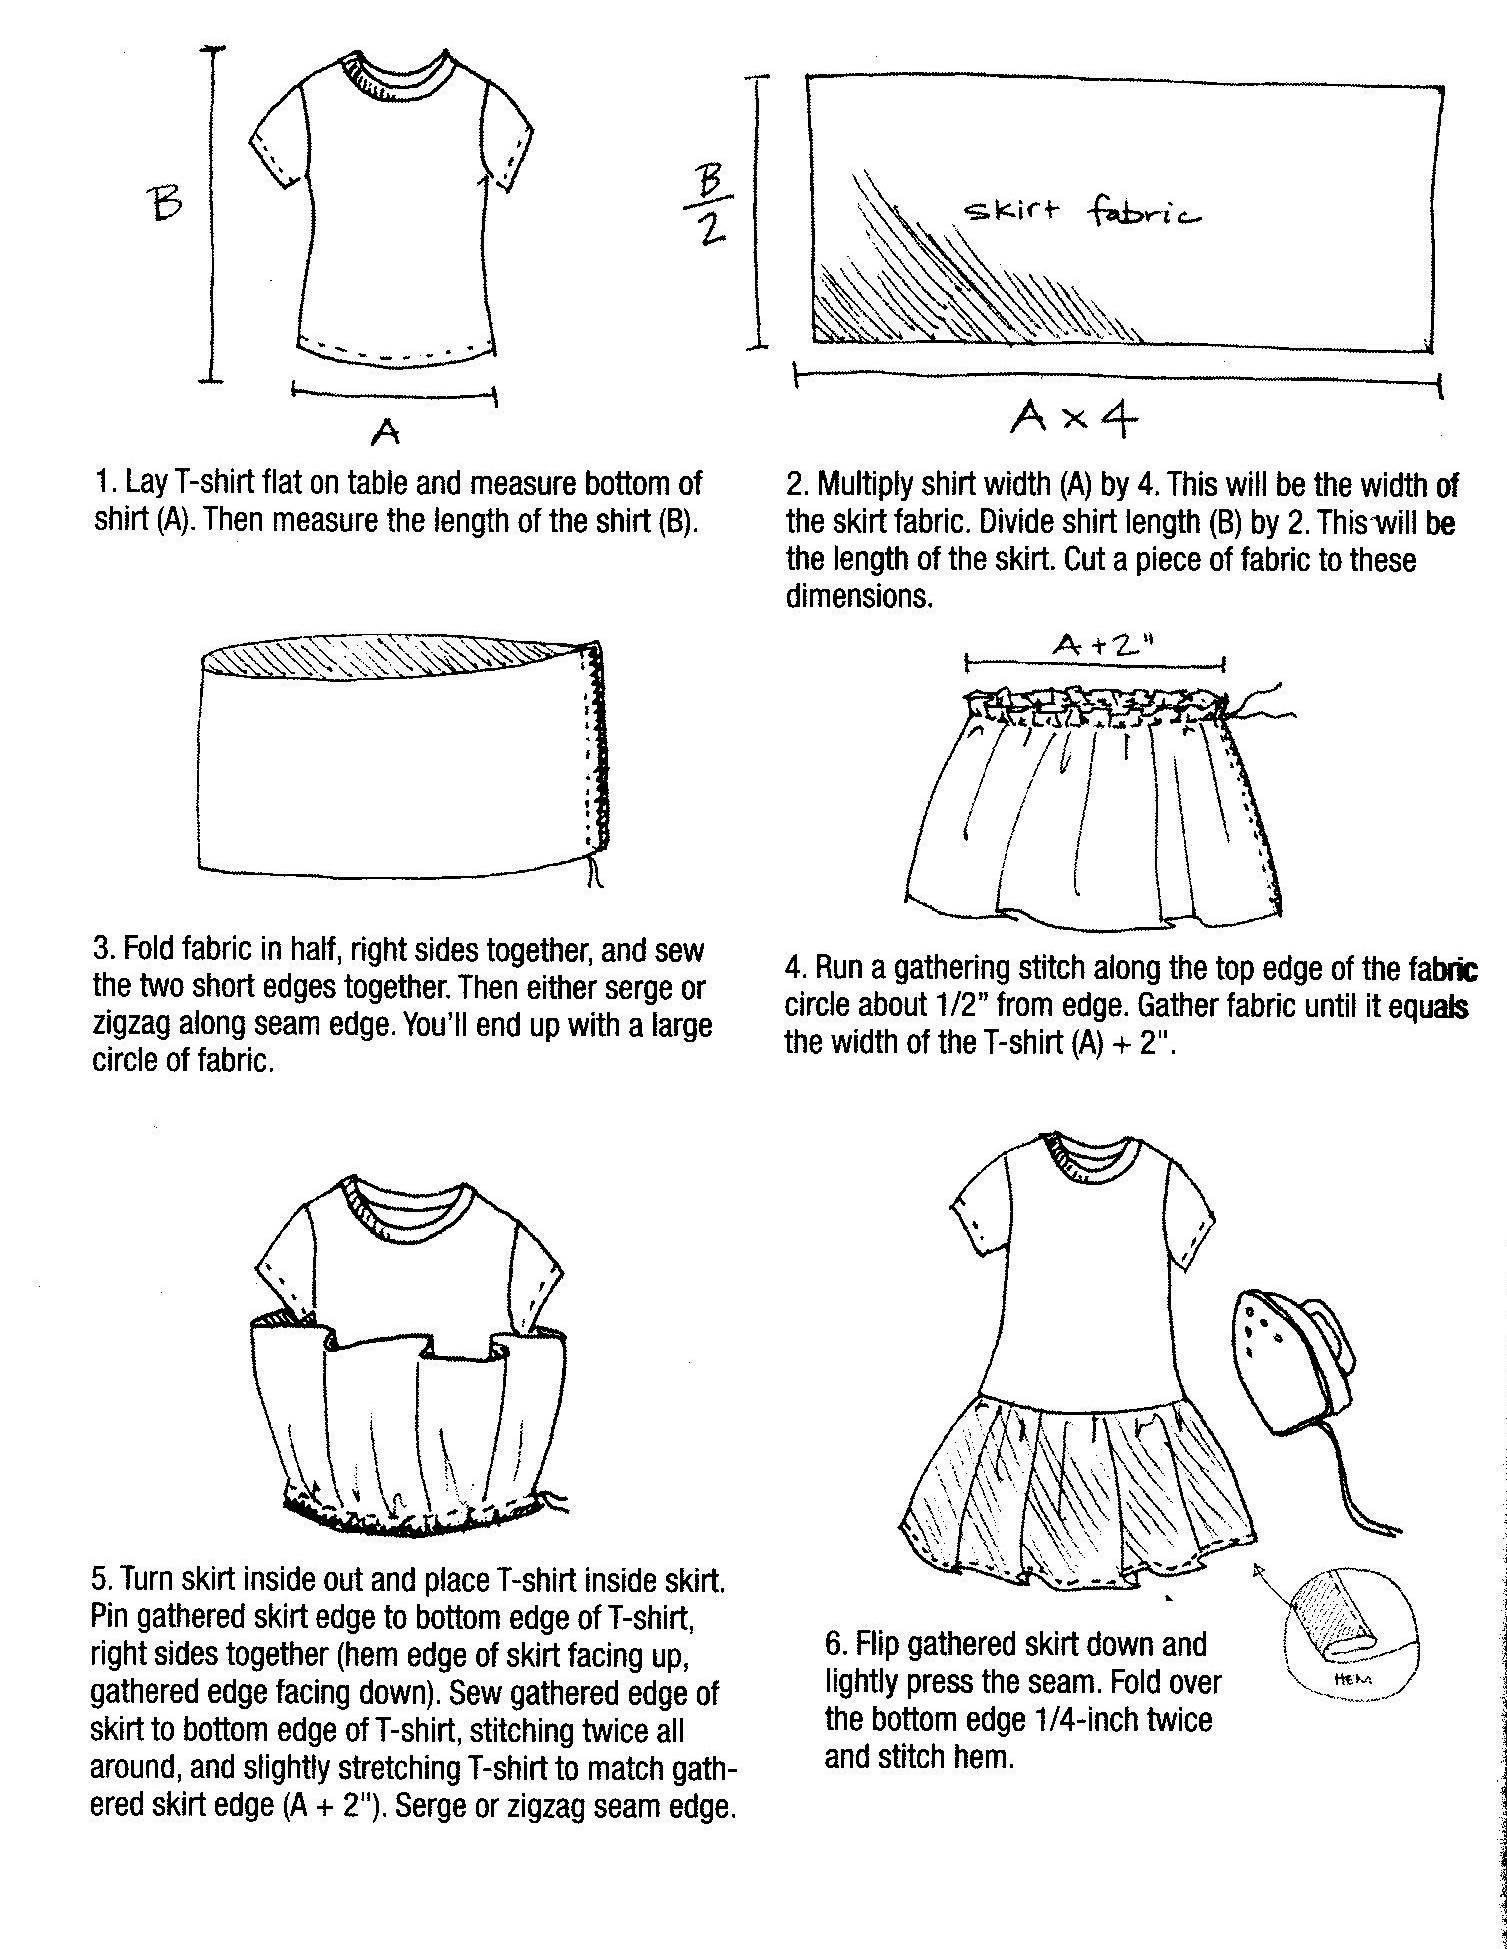 T shirt dress instructions 500 dresses for How to put a picture on a shirt diy